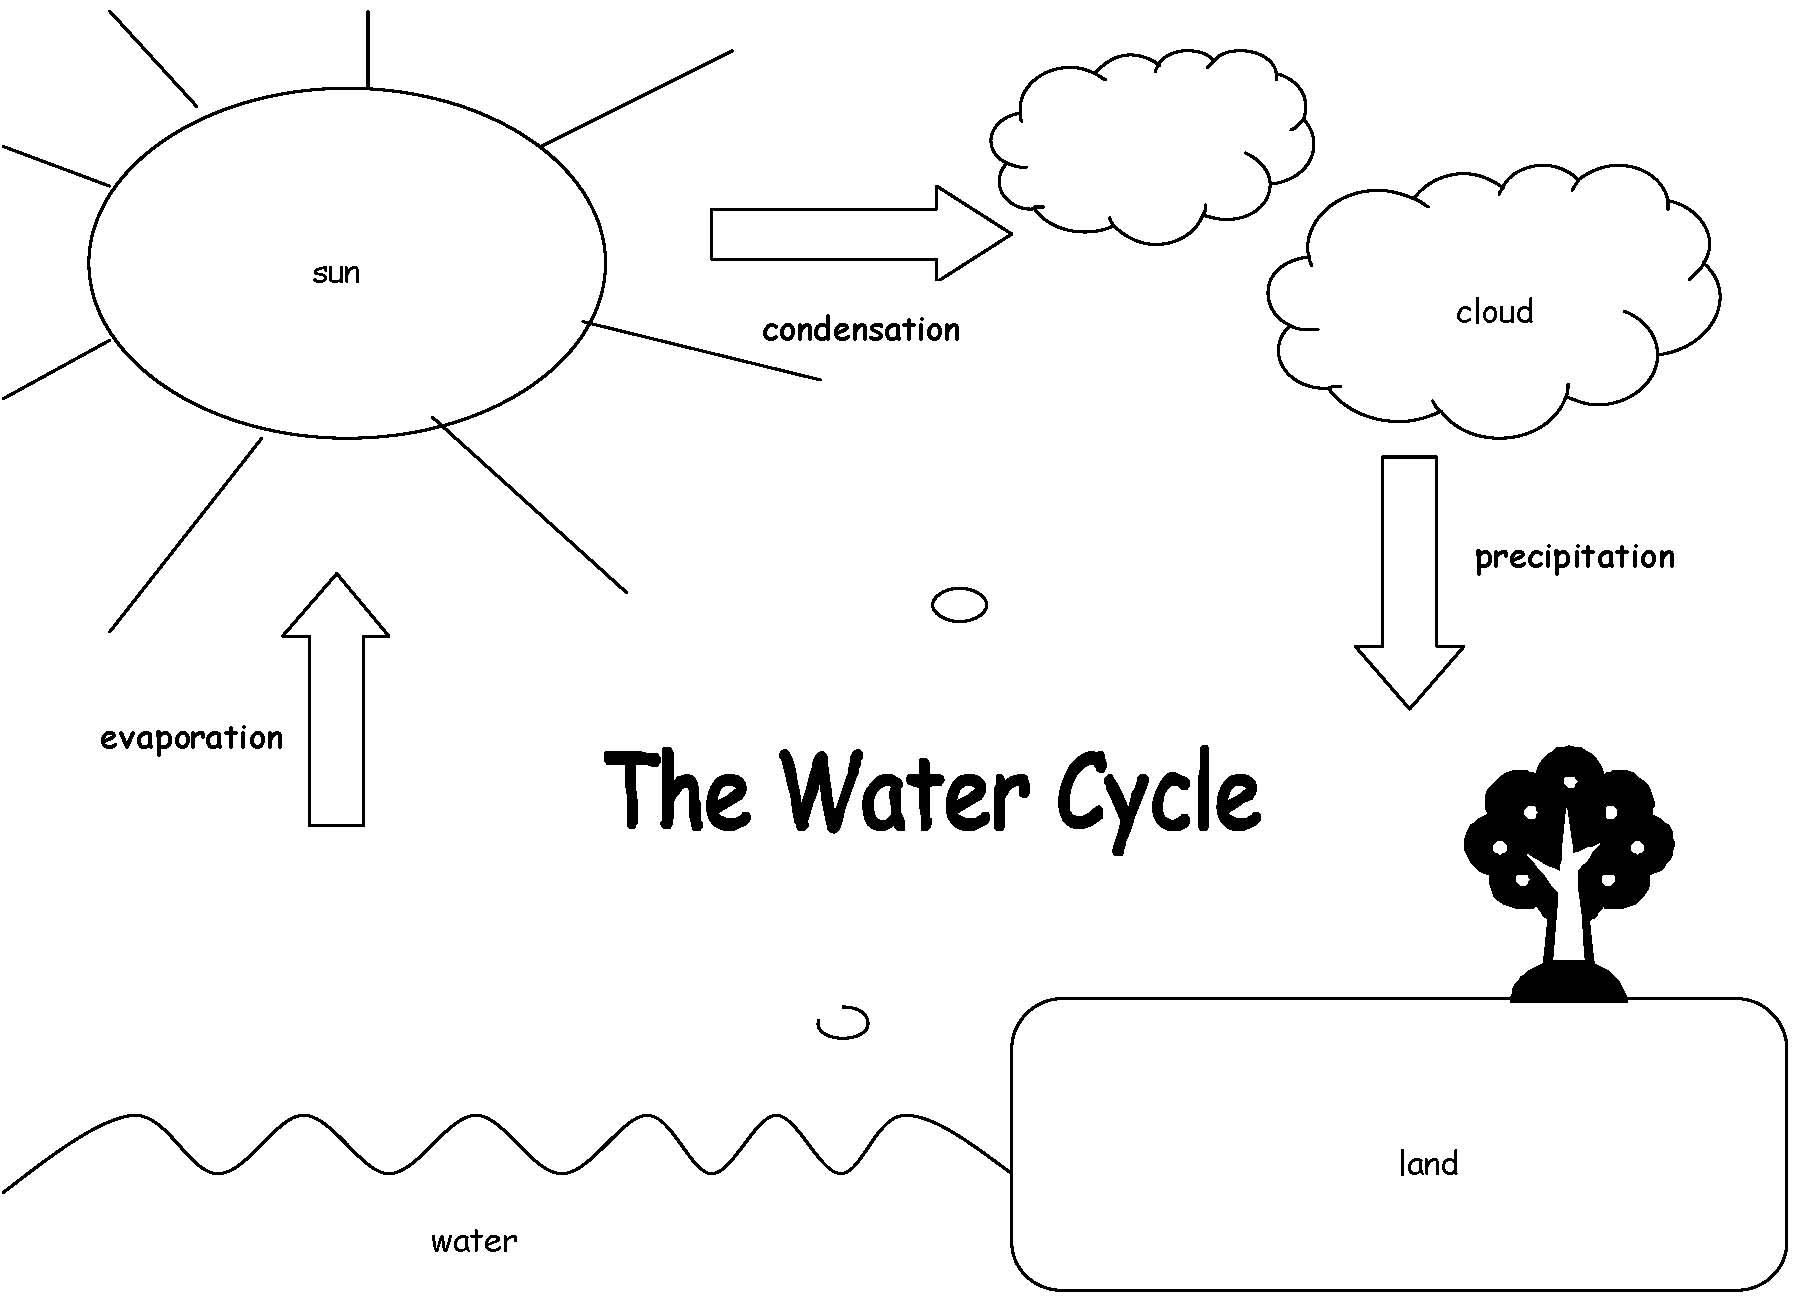 water cycle diagram blank block of nuclear power station used this last year a ziploc bag with rocks and little bit hang it in window the kids can see smaller scale model